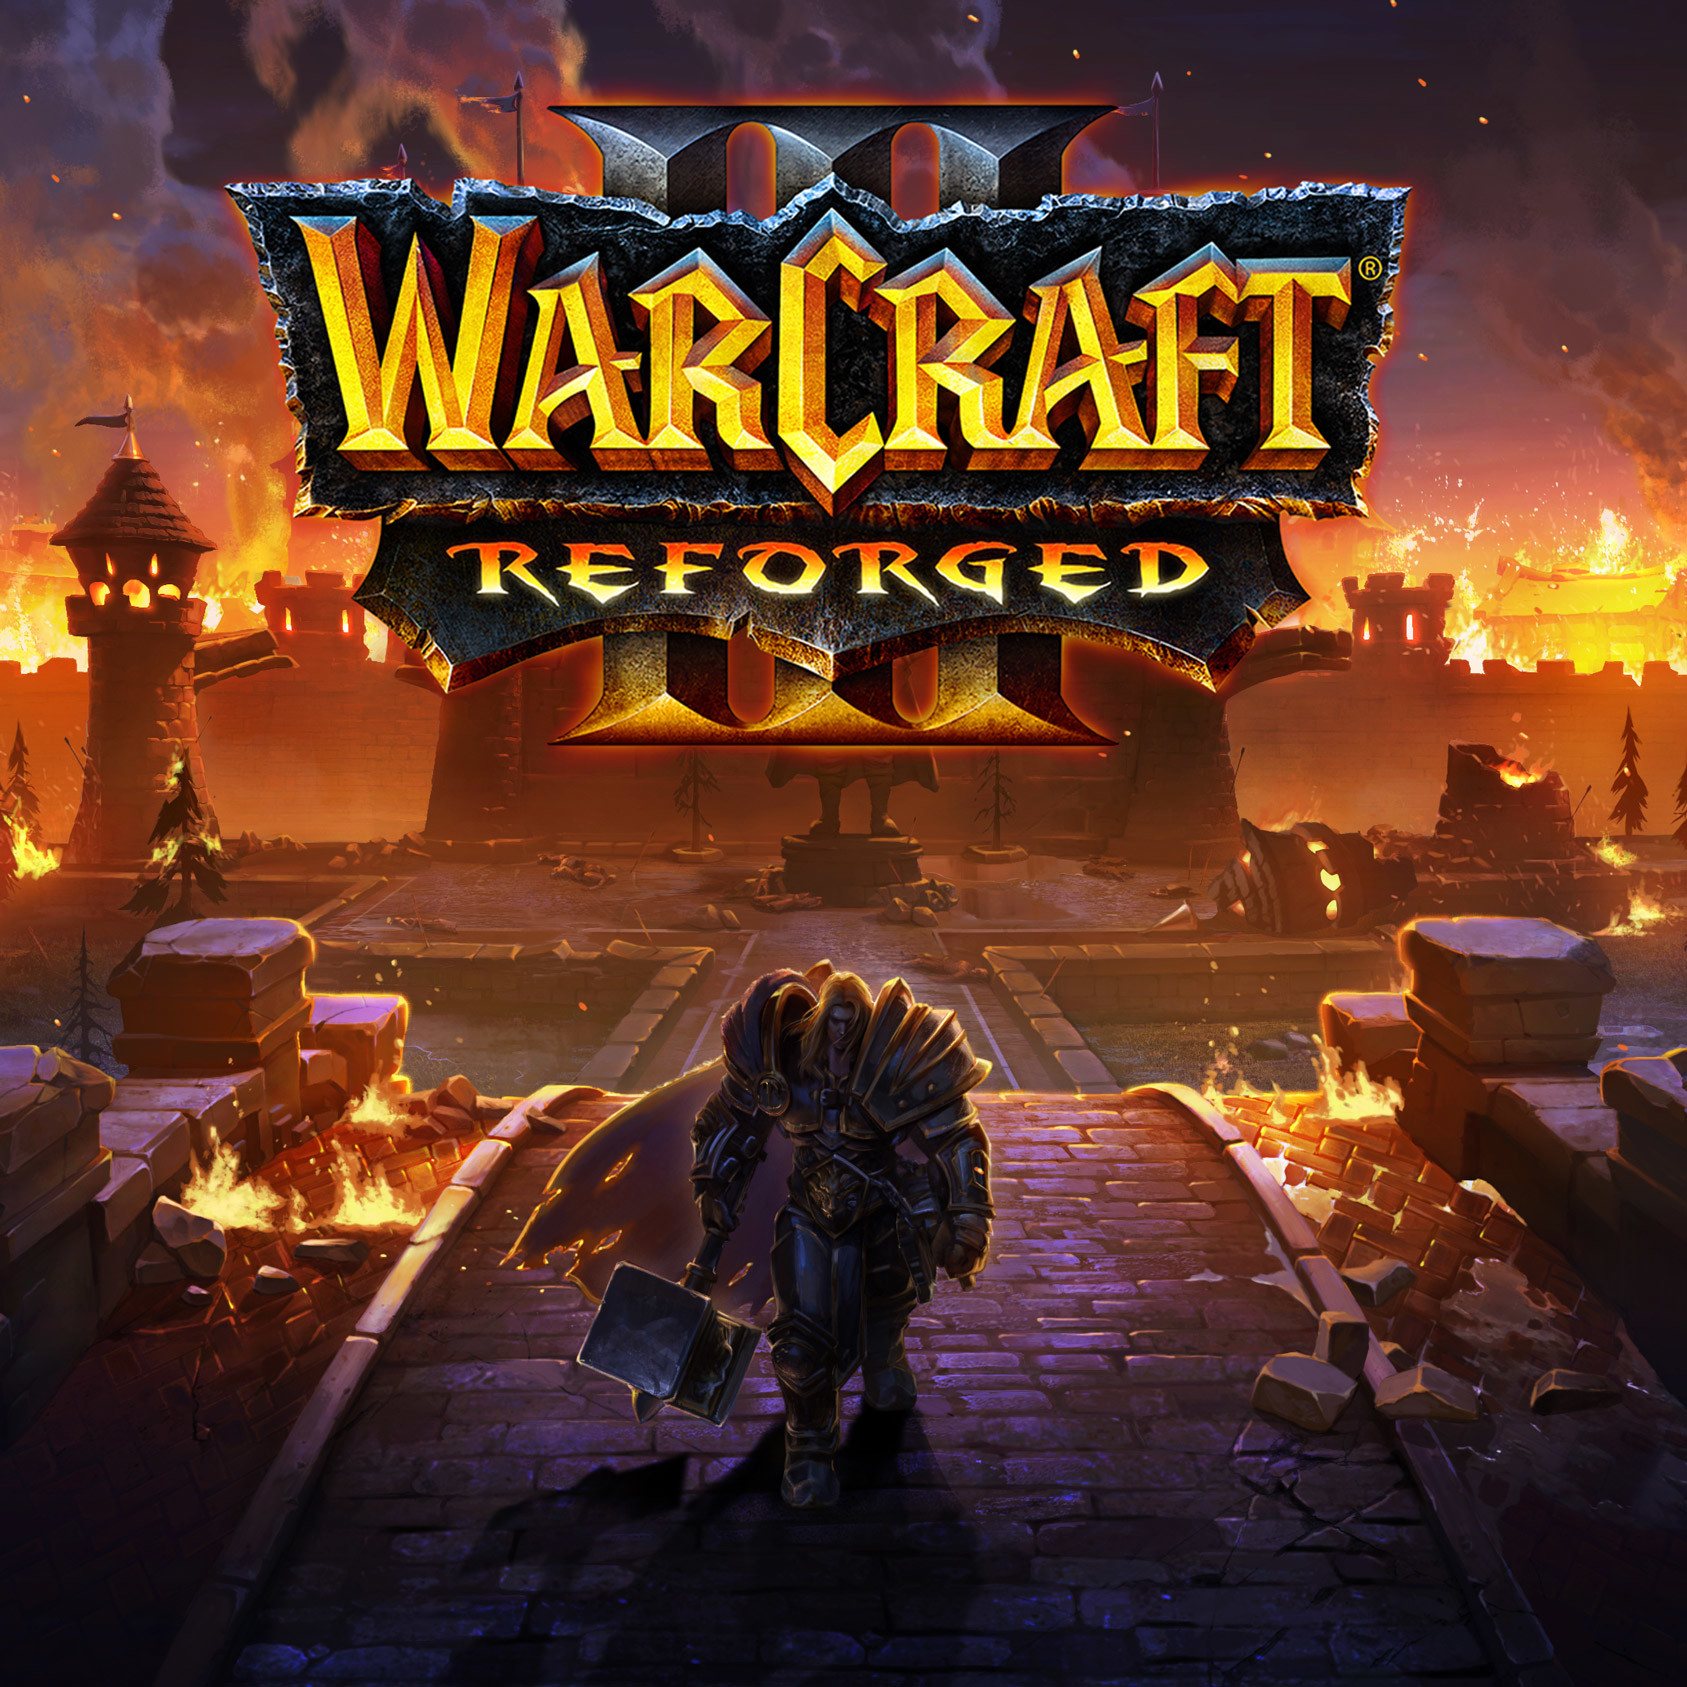 ArtStation - Warcraft III Reforged - Outro Screen, ken wong